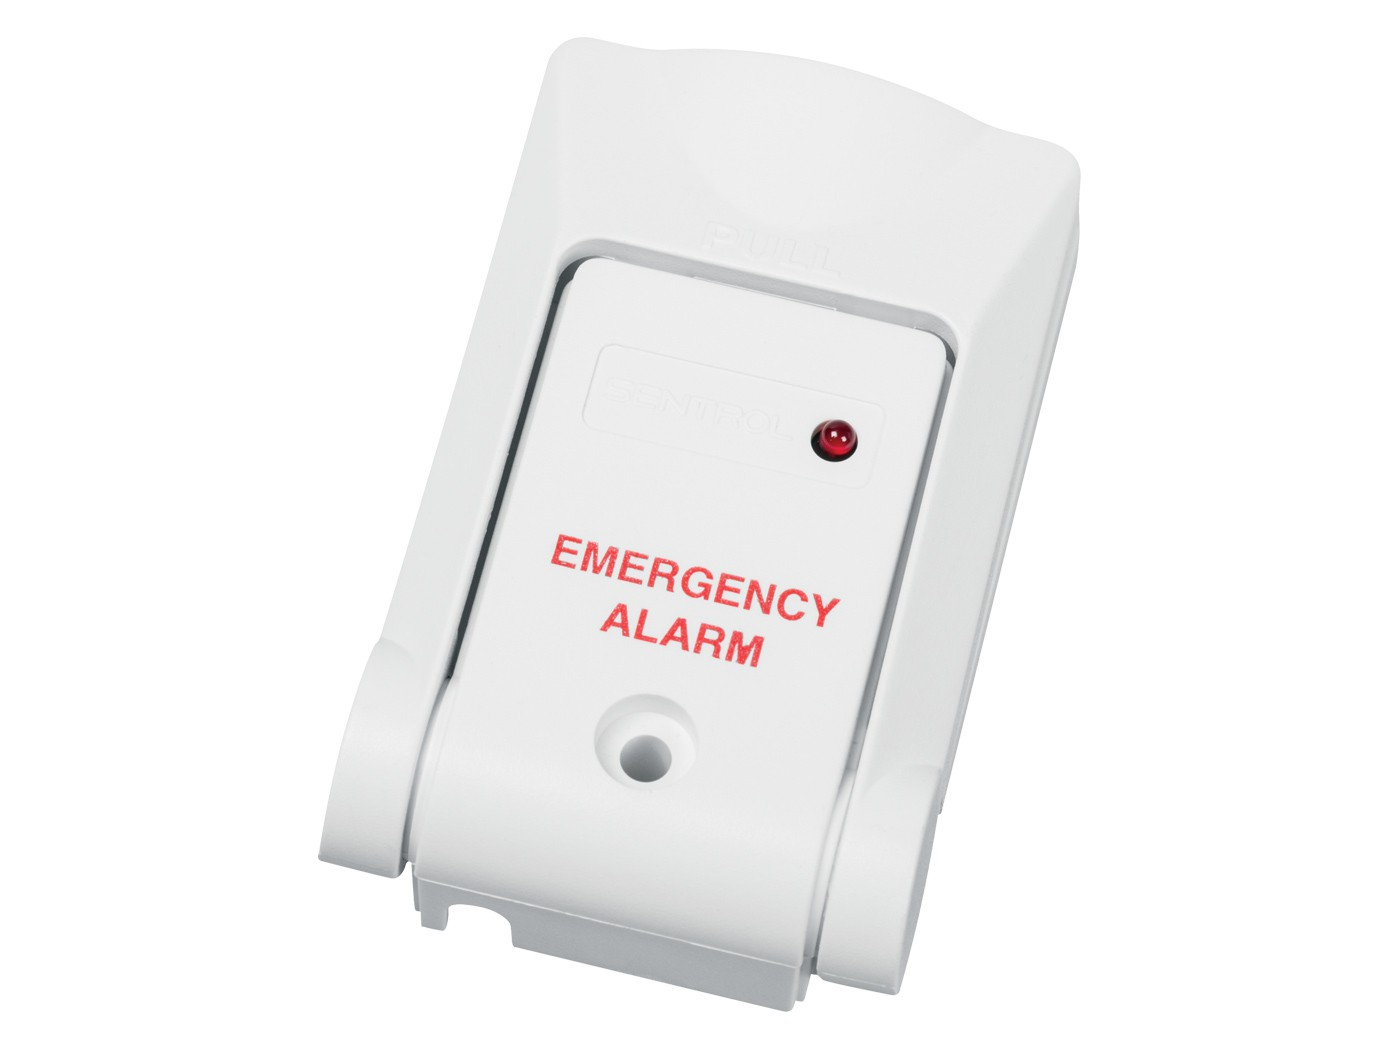 How High Pressure Water Mist Fire Fighting System For Ships Works furthermore Fire Alarm Systems in addition Fire Hydrant Systems as well Honeywell Lynx Touch L5200 Wireless Home Securityautomation System further Fire alarm. on fire alarm control panel installation